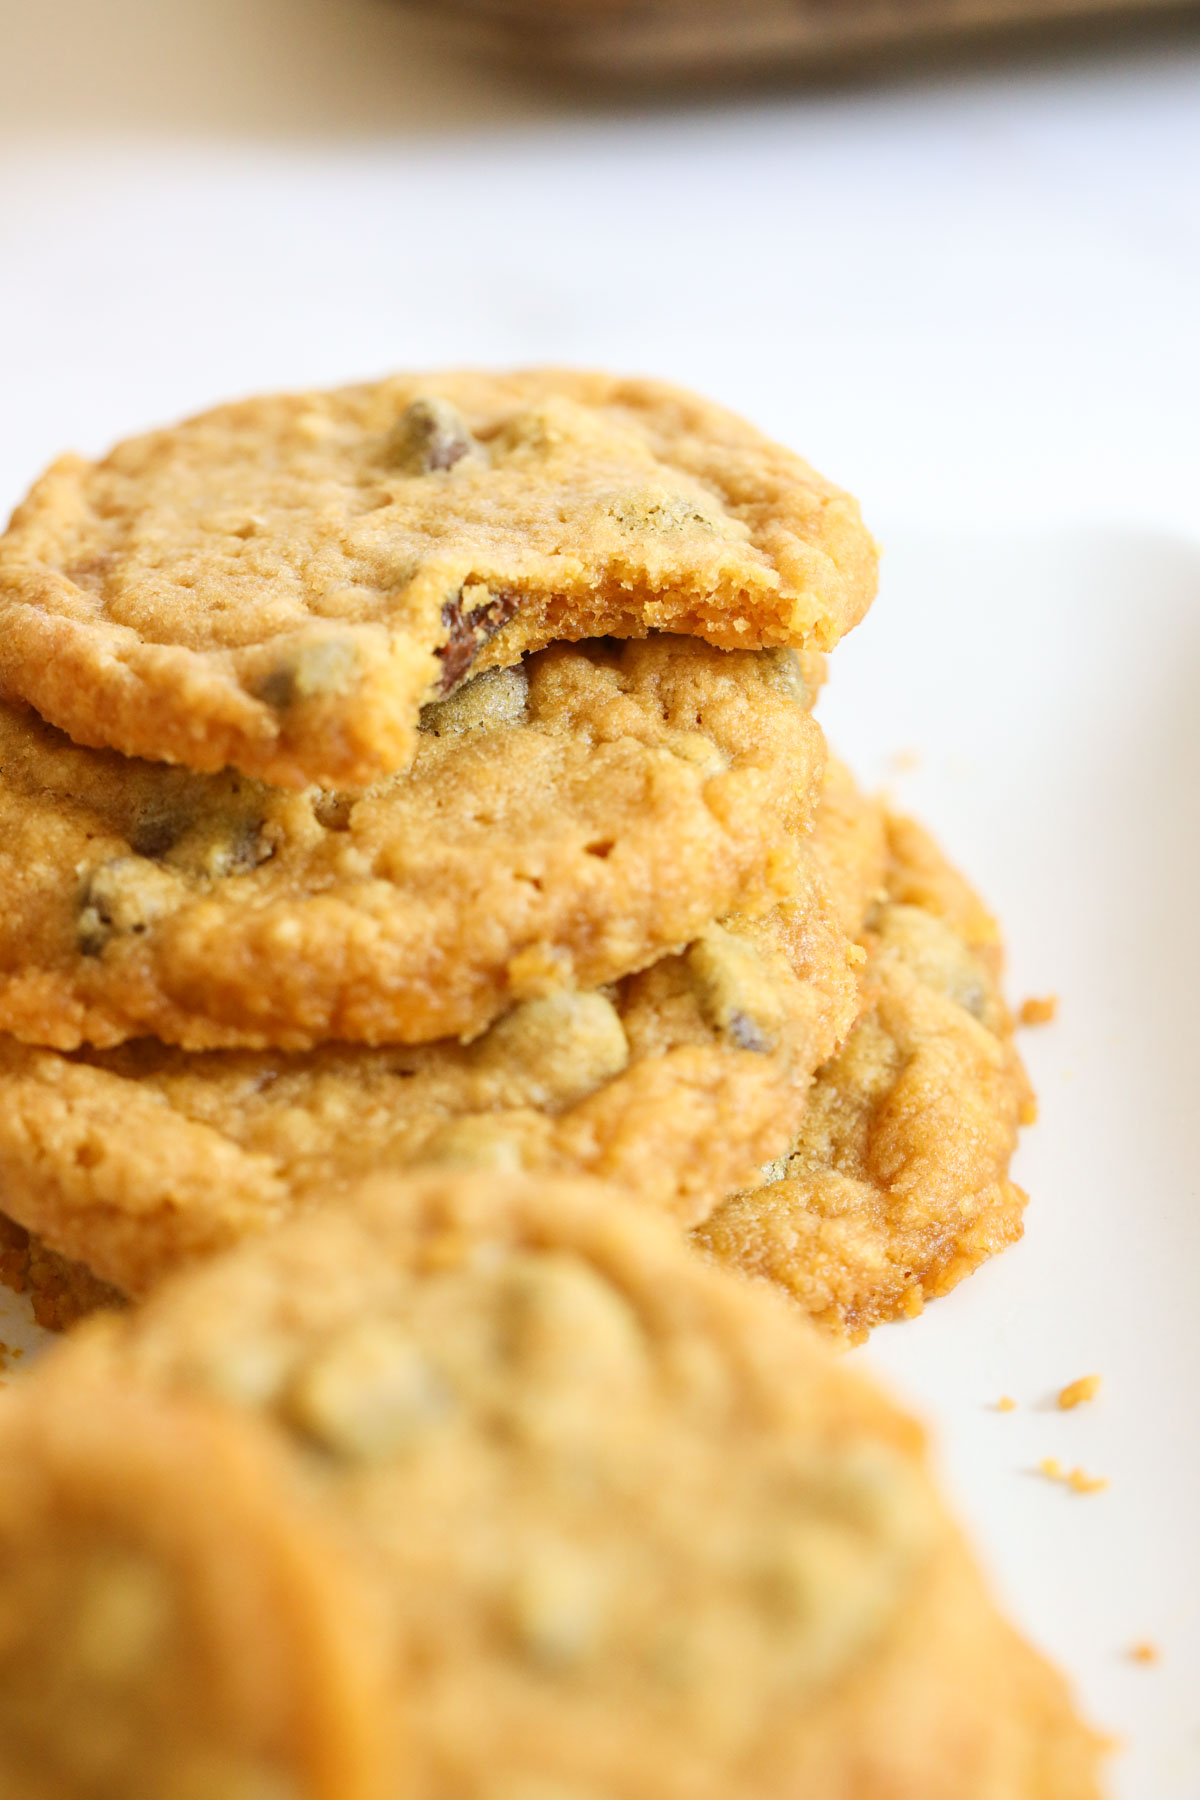 Pumpkin cookies stacked with a bite taken from one on top